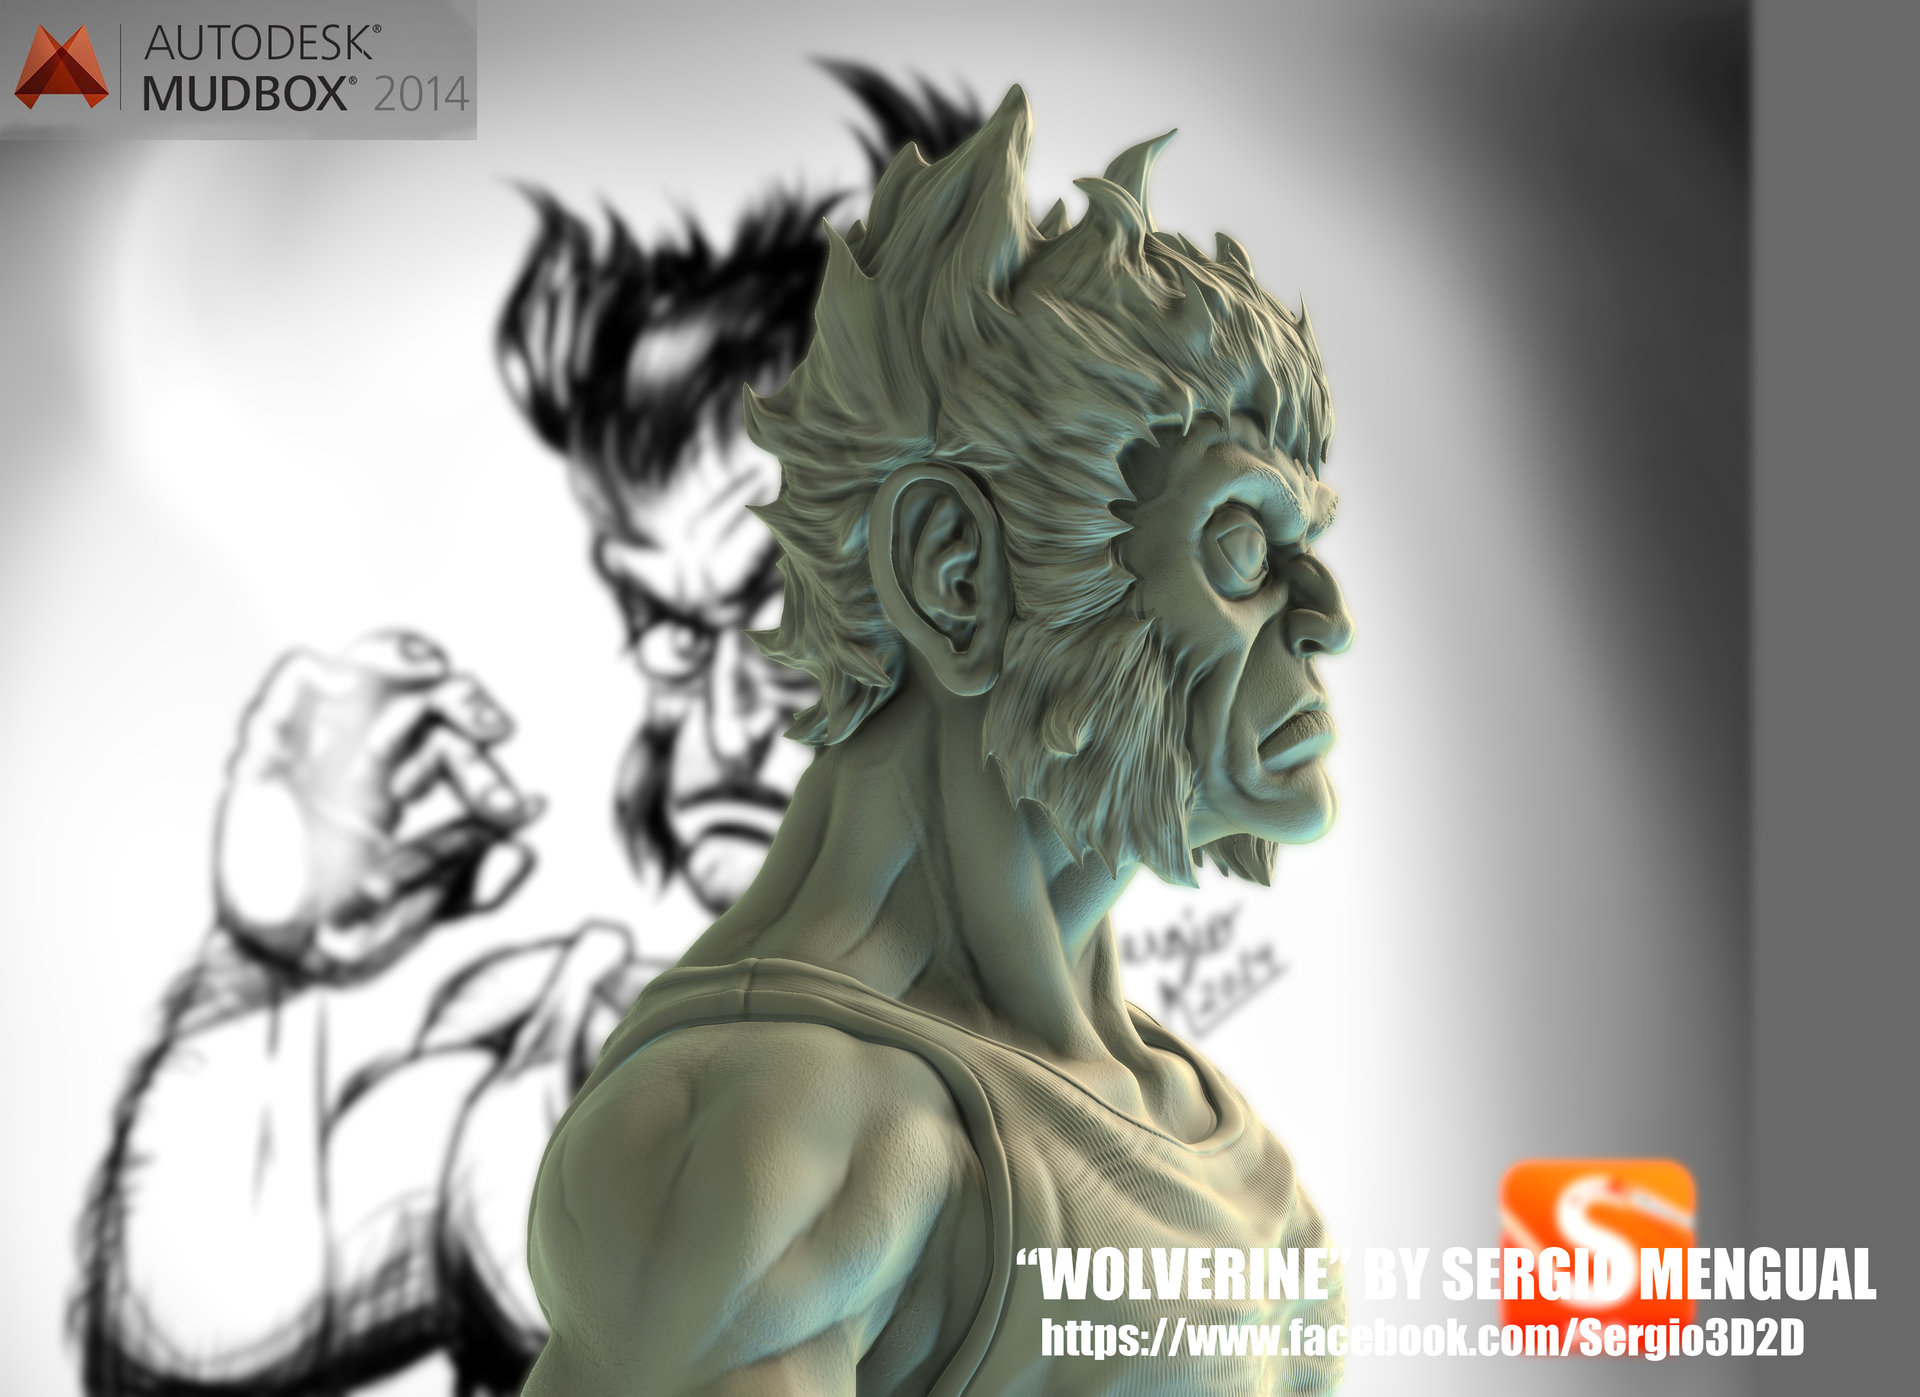 Sergio gabriel mengual wolverine publish2